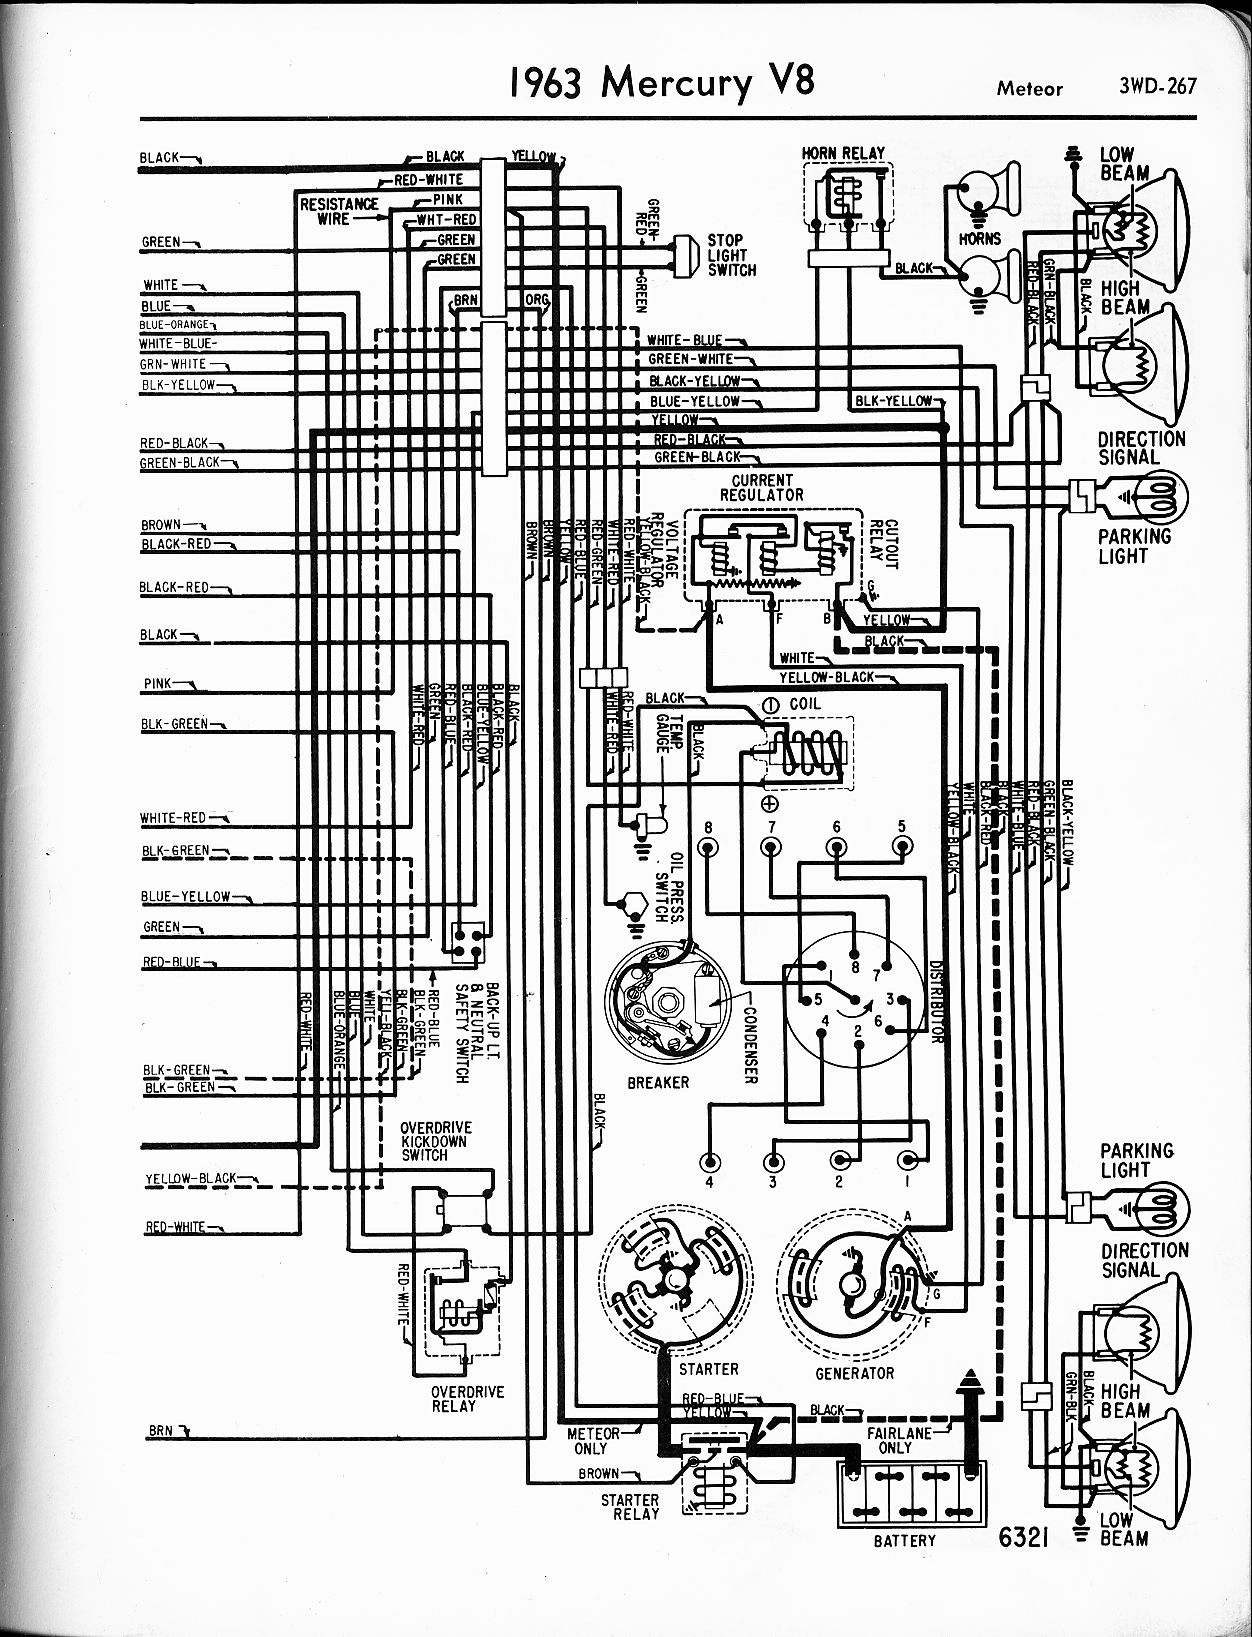 Enchanting wiring diagram manual for 1952 mercury monterey ideas